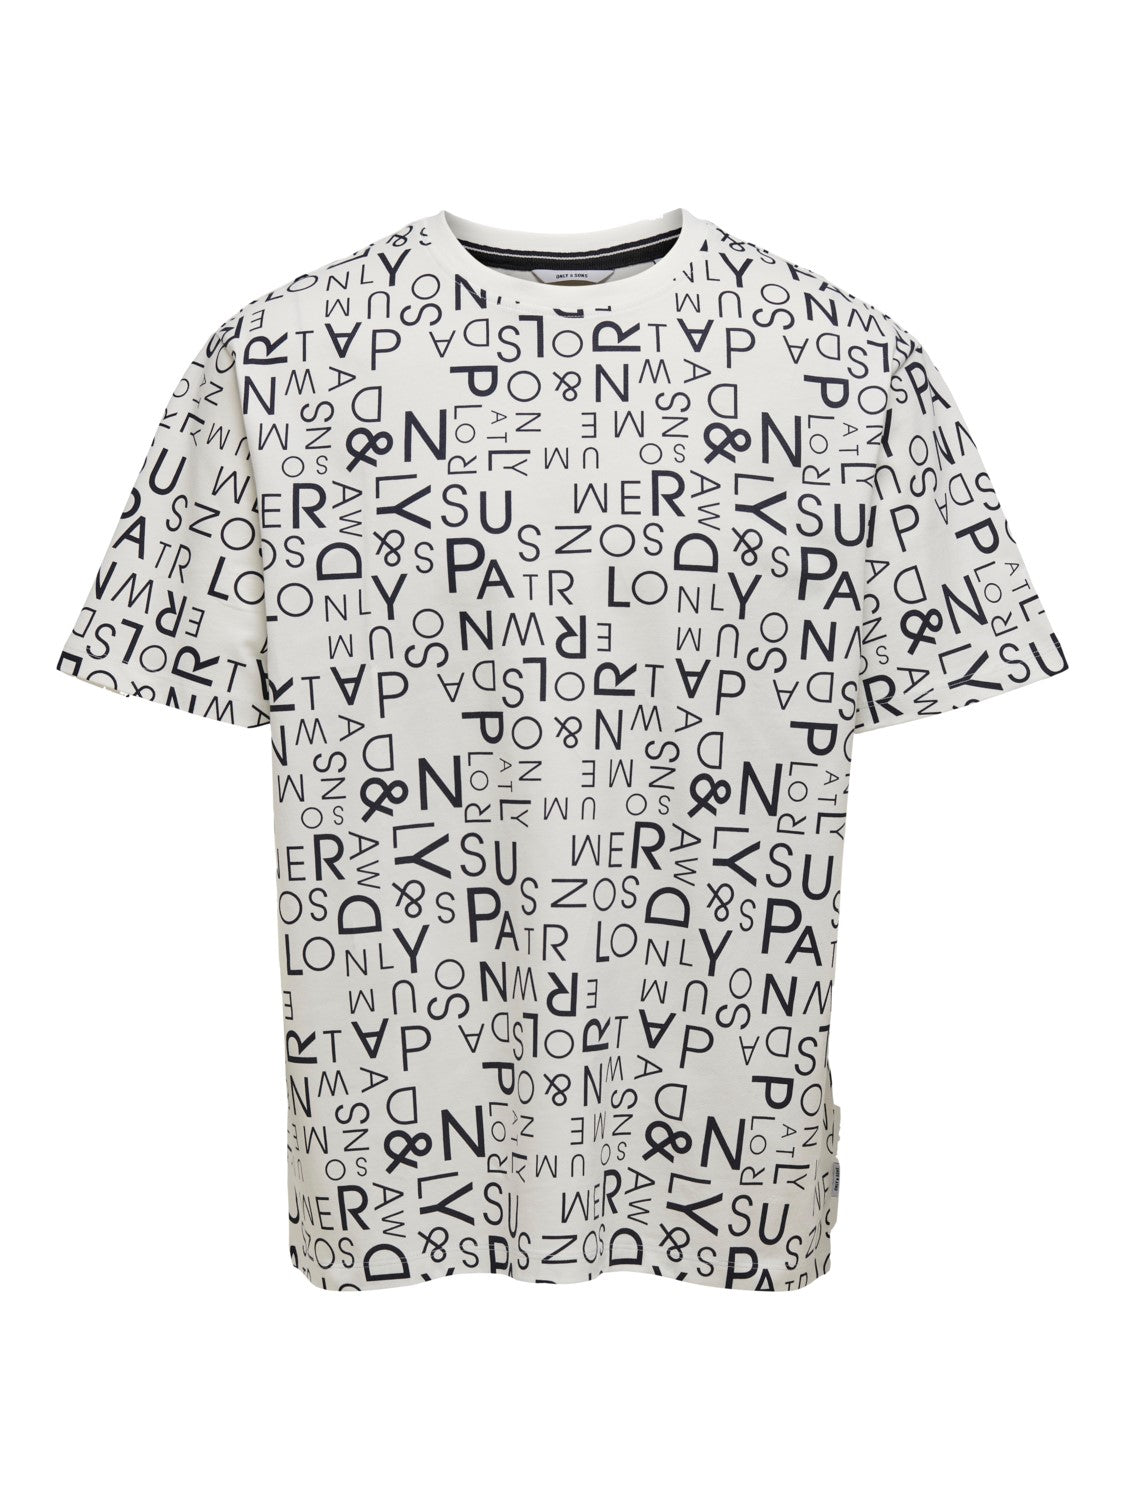 NEIL OVZ SS AOP TEE - White - Only & Sons